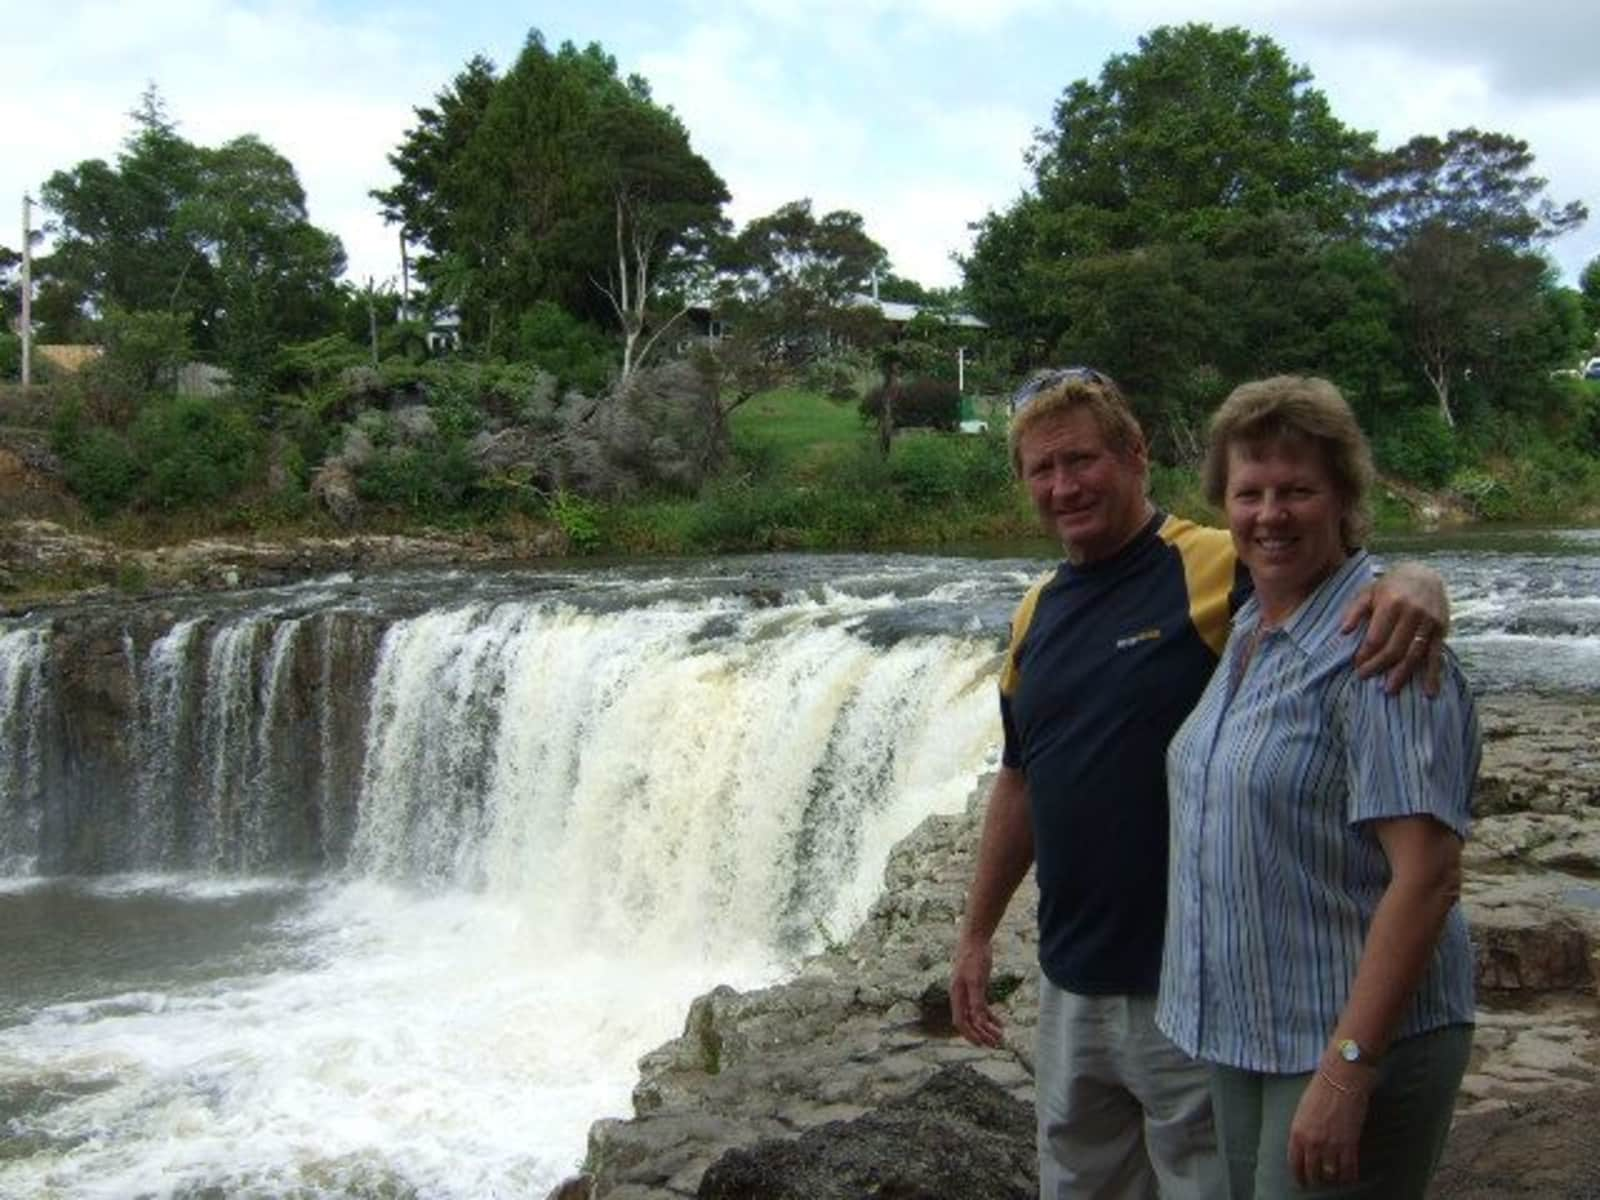 Keith & Sue from North Wollongong, New South Wales, Australia